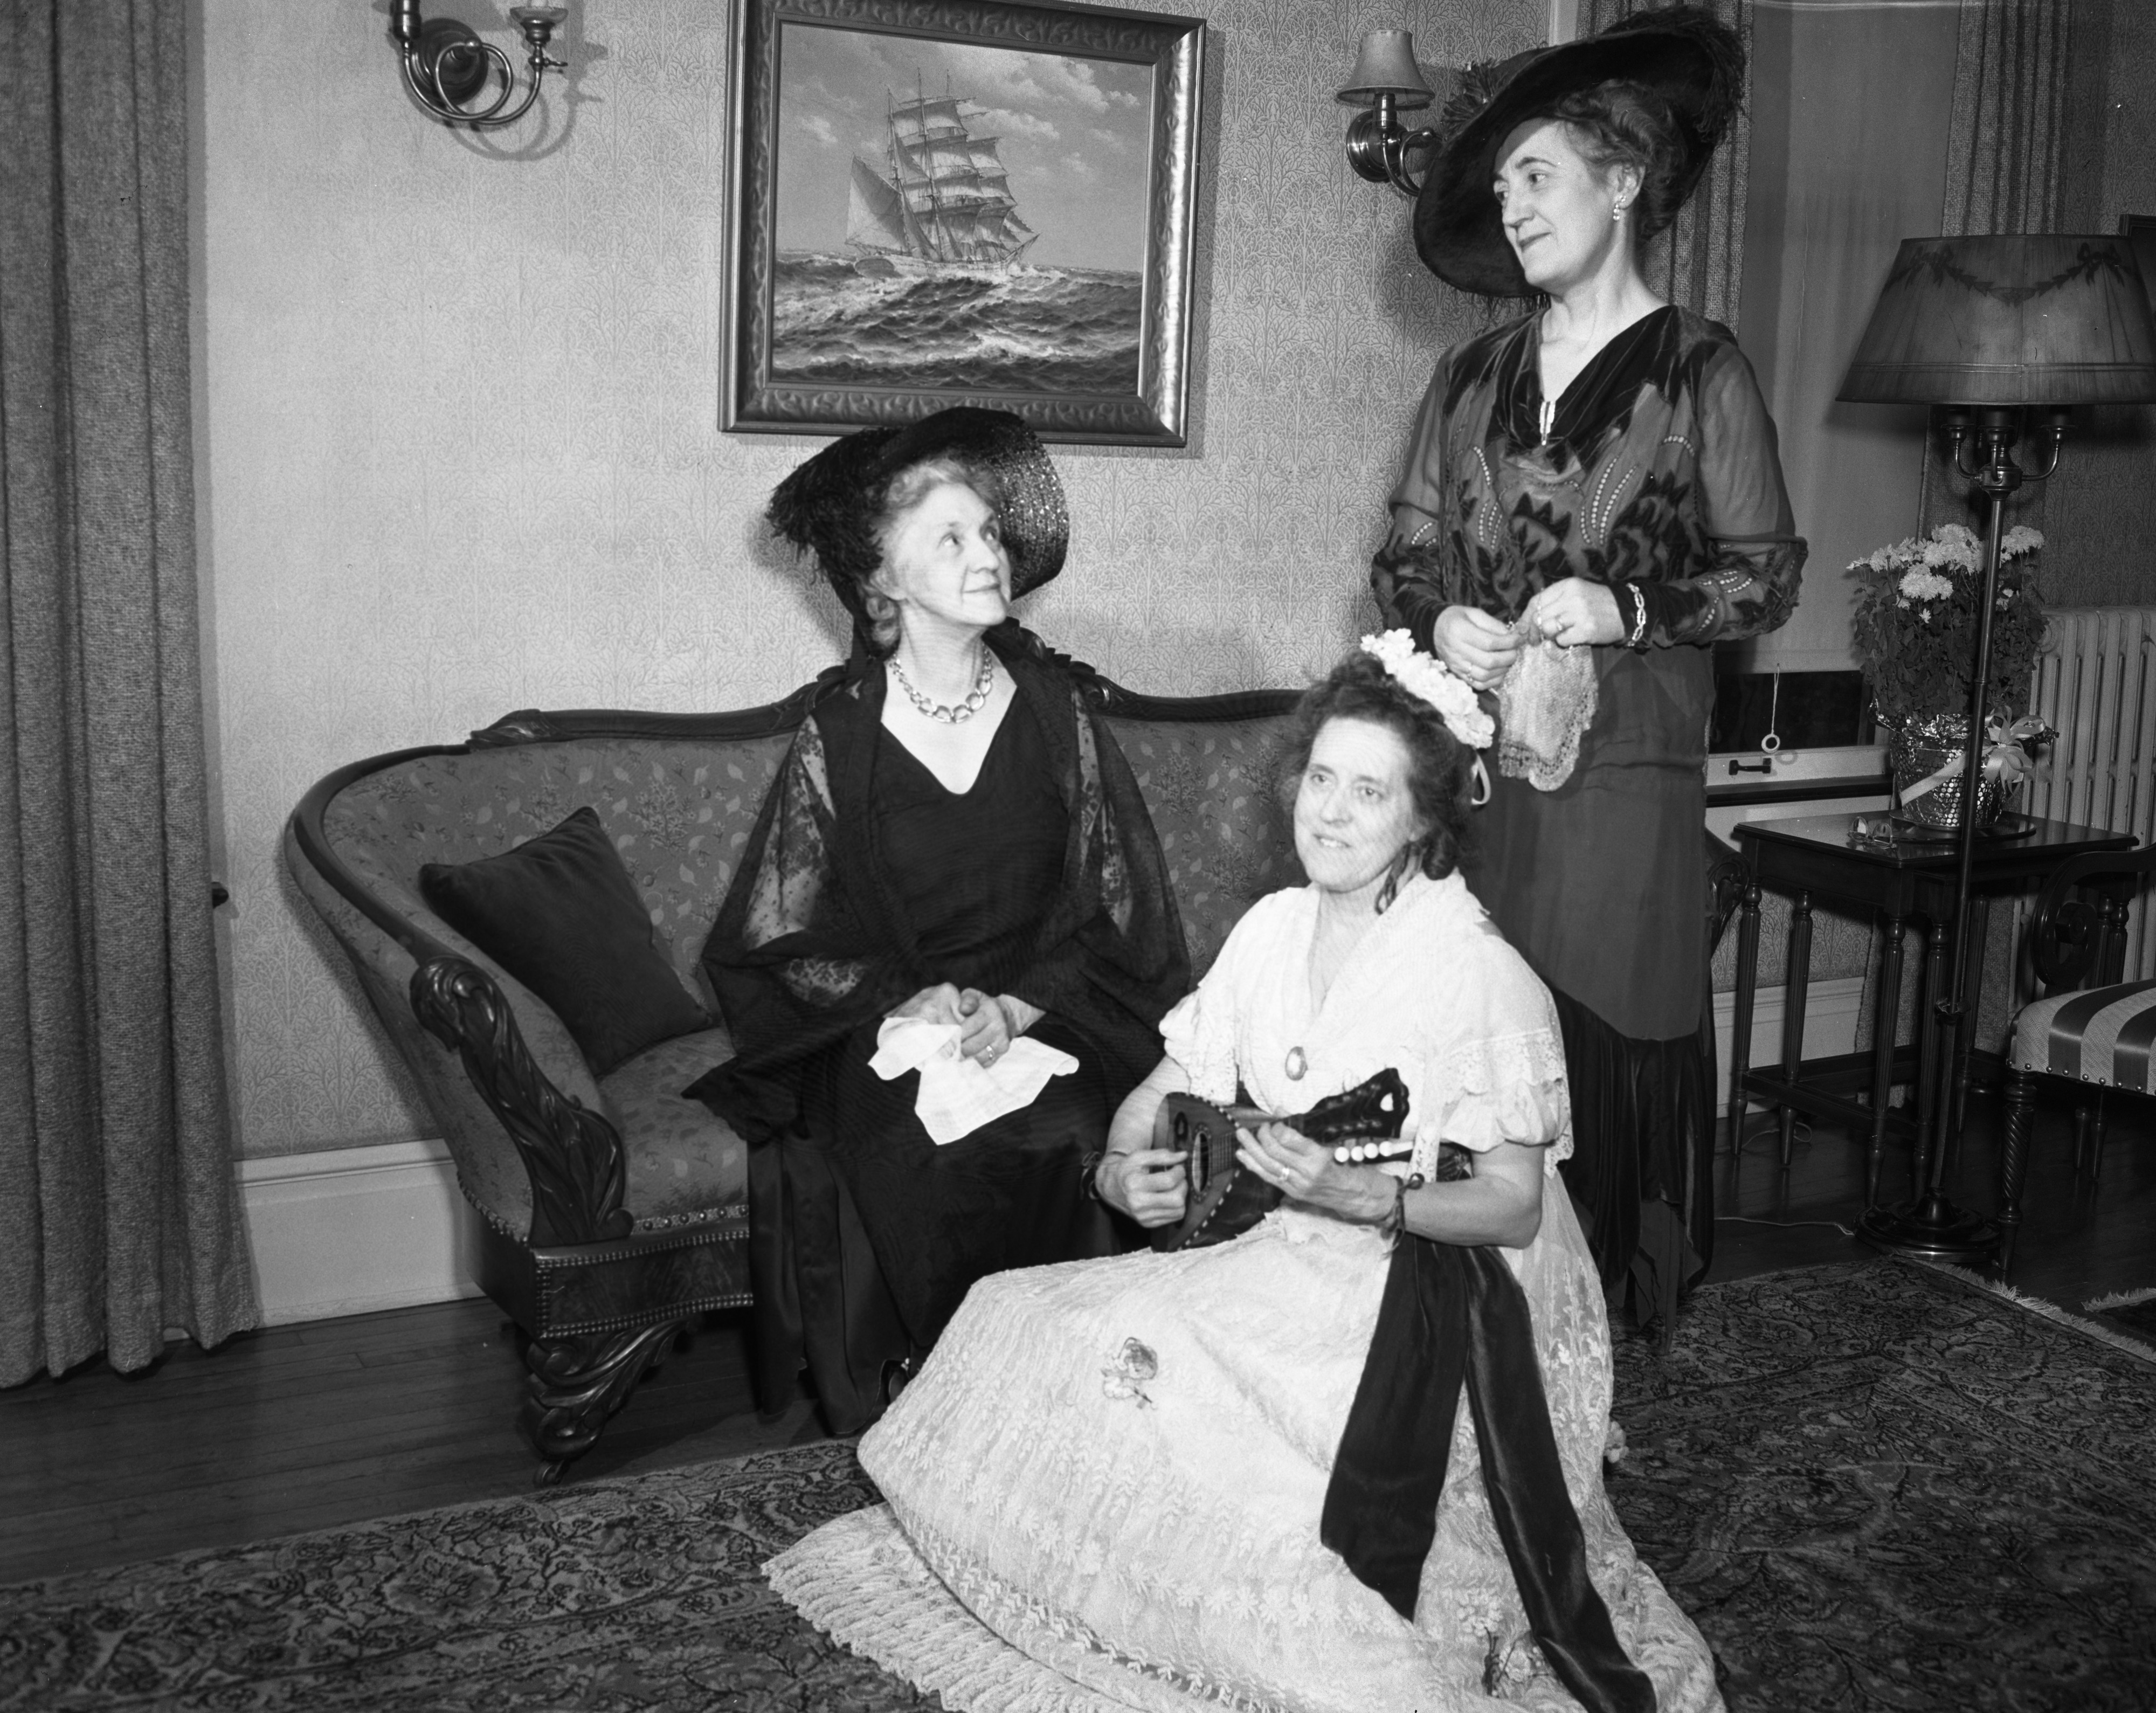 Mrs. Edwin Bragg, Alice Woody, and Mrs. Alfred Lee in Period Costumes, Congregational Church, December 1946 image